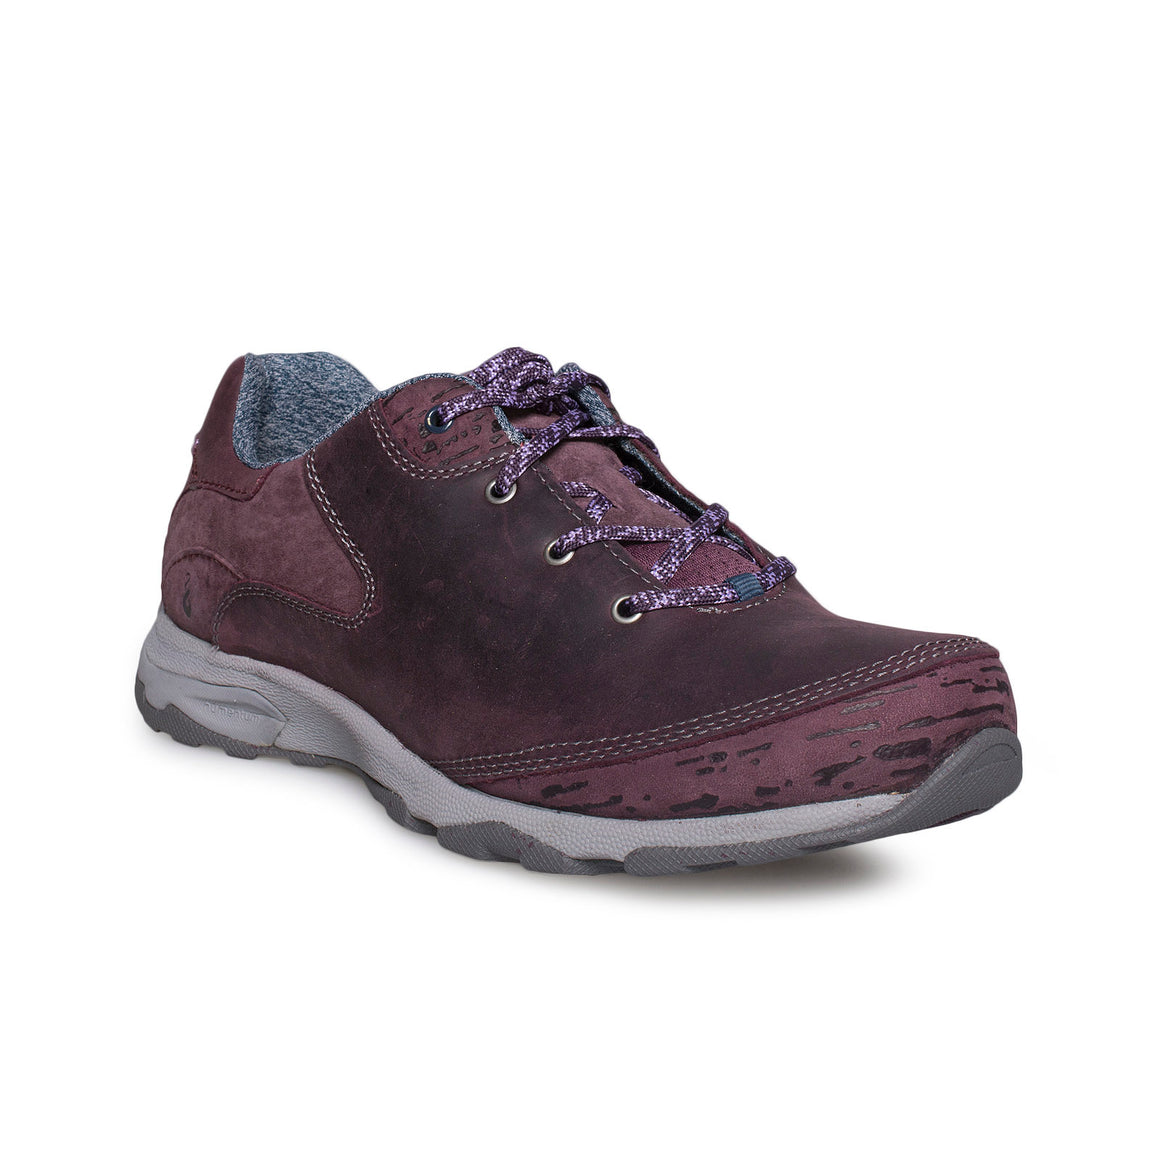 Ahnu Sugar Venture Lace Dark Plum Shoes